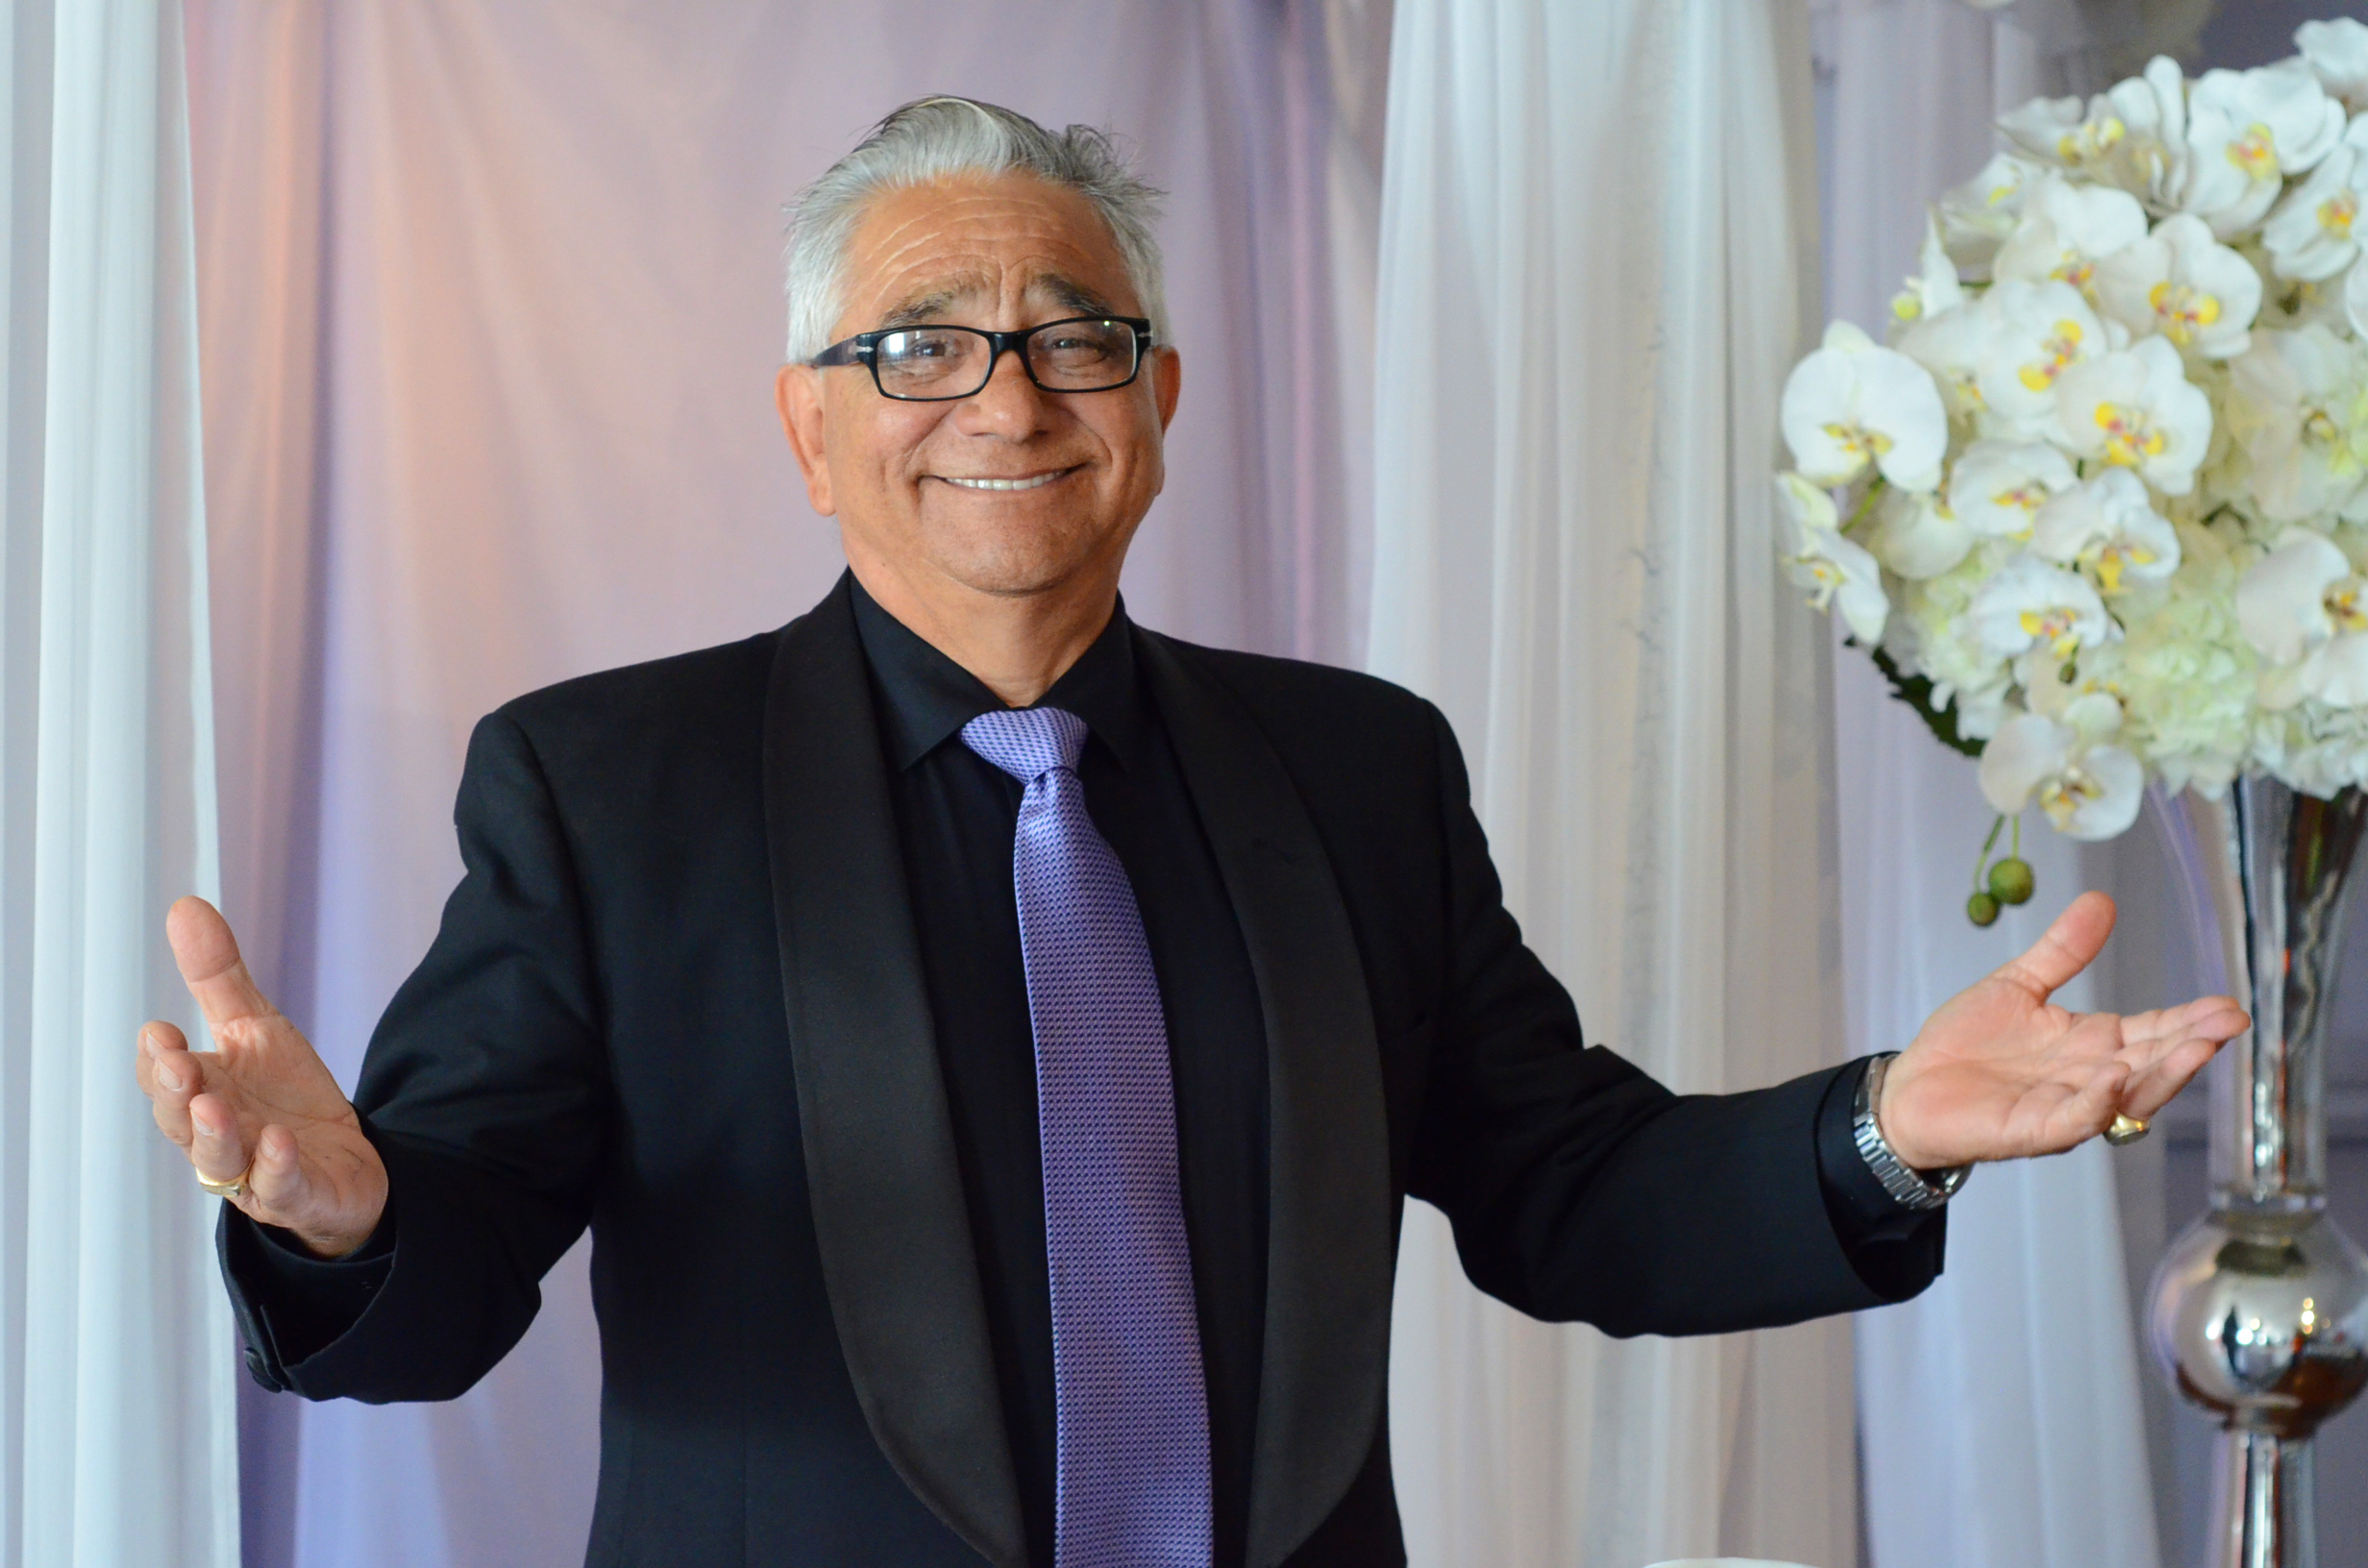 Fernando Howard has been officiating weddings at the Chapel for about 8 years.